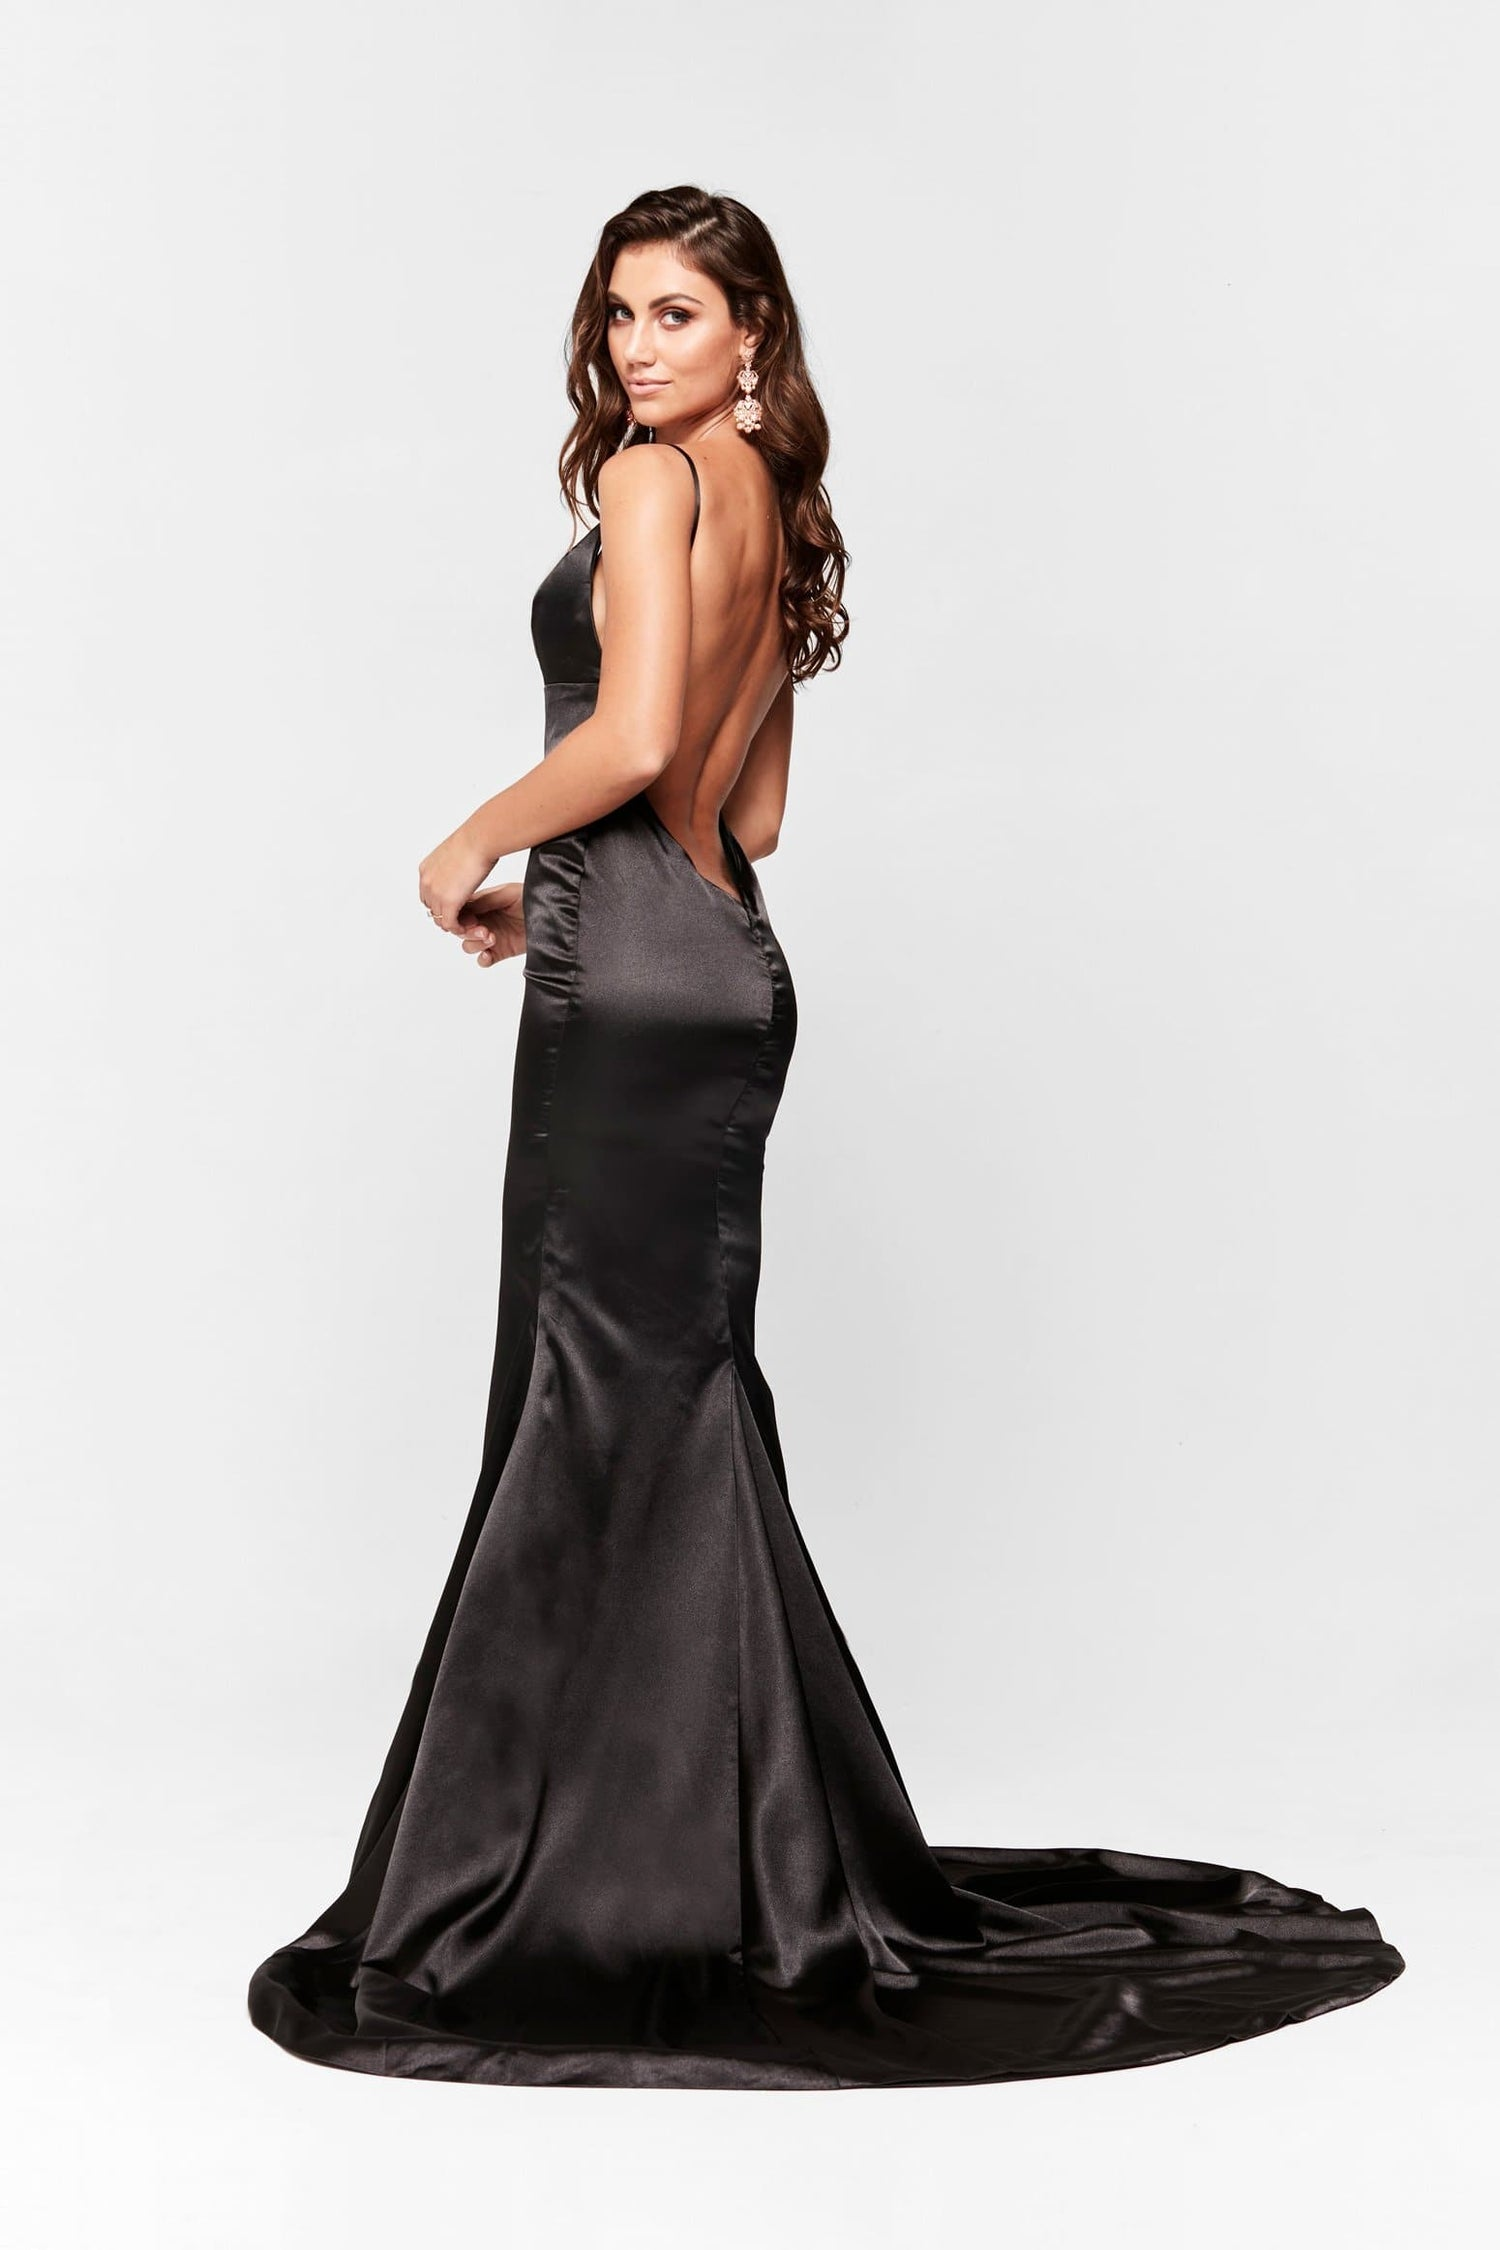 A&N Vivian - Black Satin Gown with V Neck and Mermaid Train